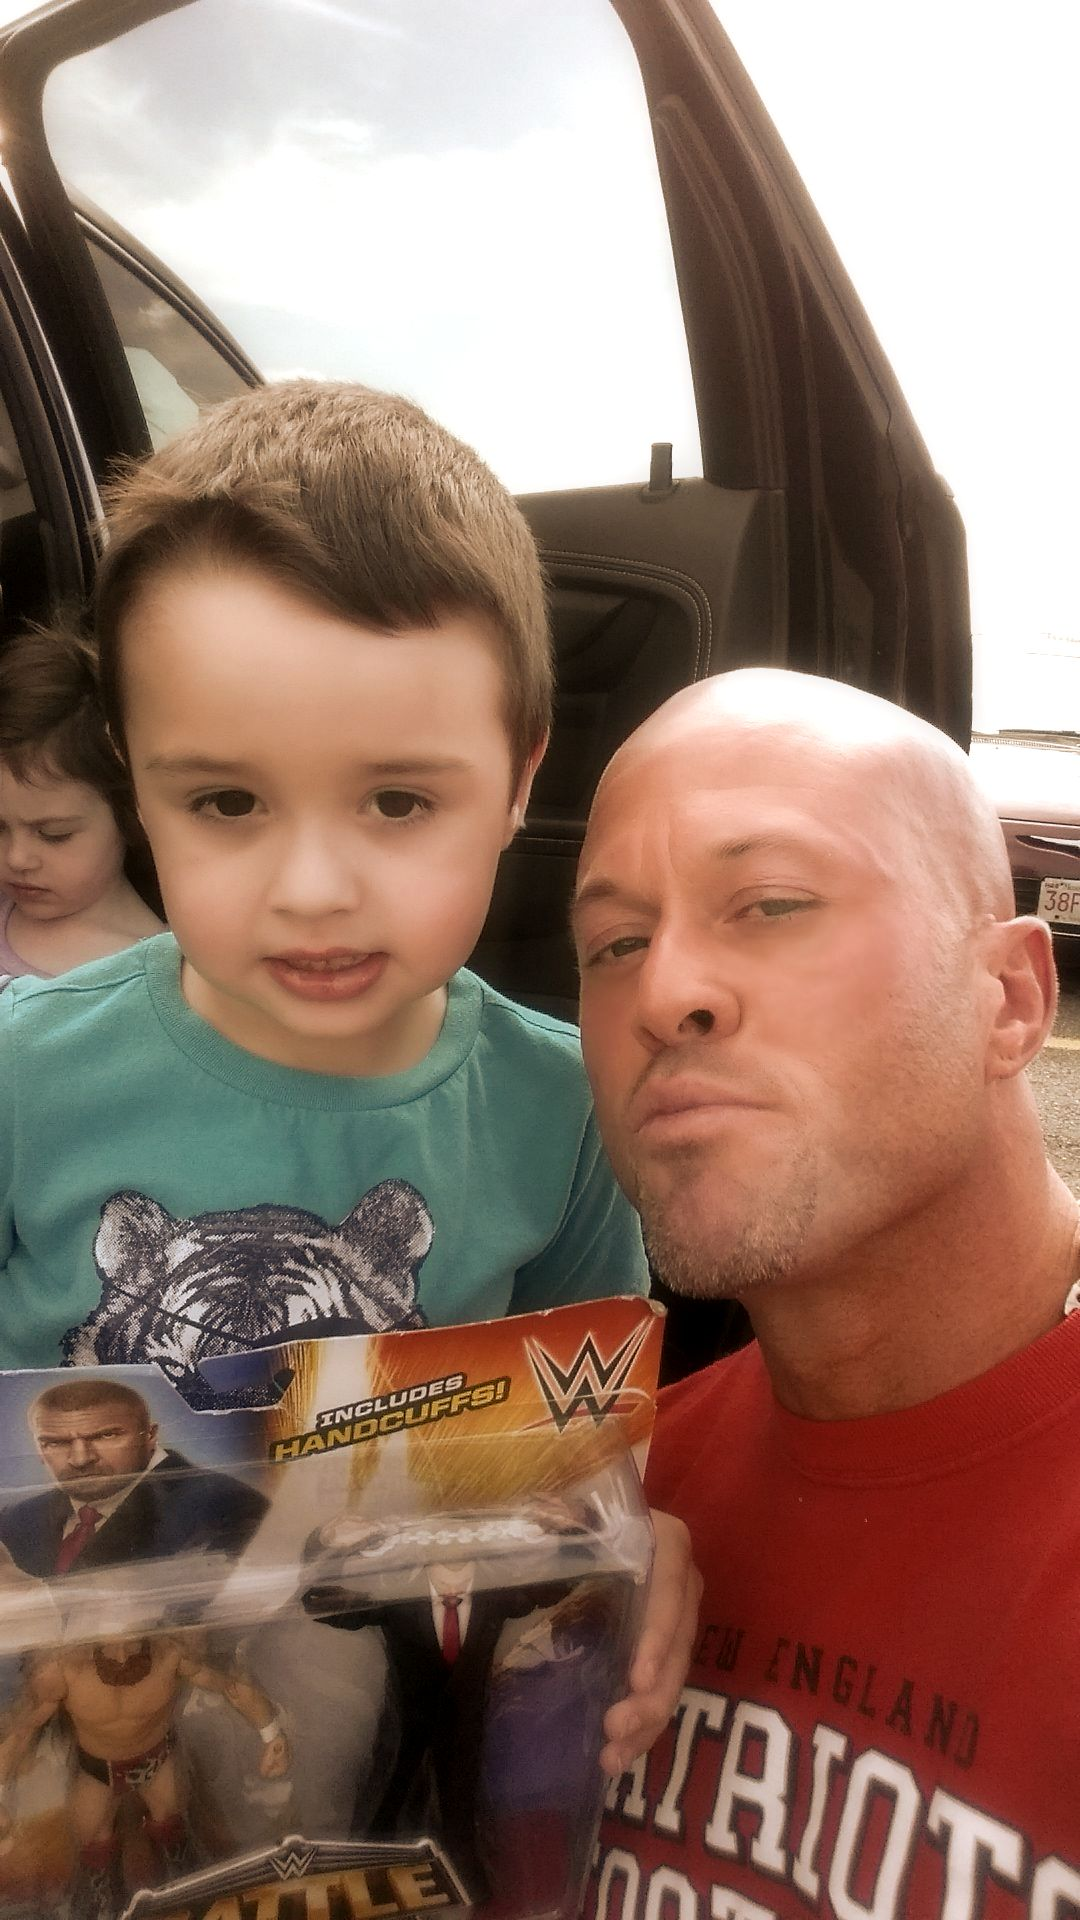 """With my son Cole on the week of his 6th birthday. Enjoy those WWE wrestling figures, love you little buddy."" - John Quinlan 8/22/2015 #JohnQuinlan"